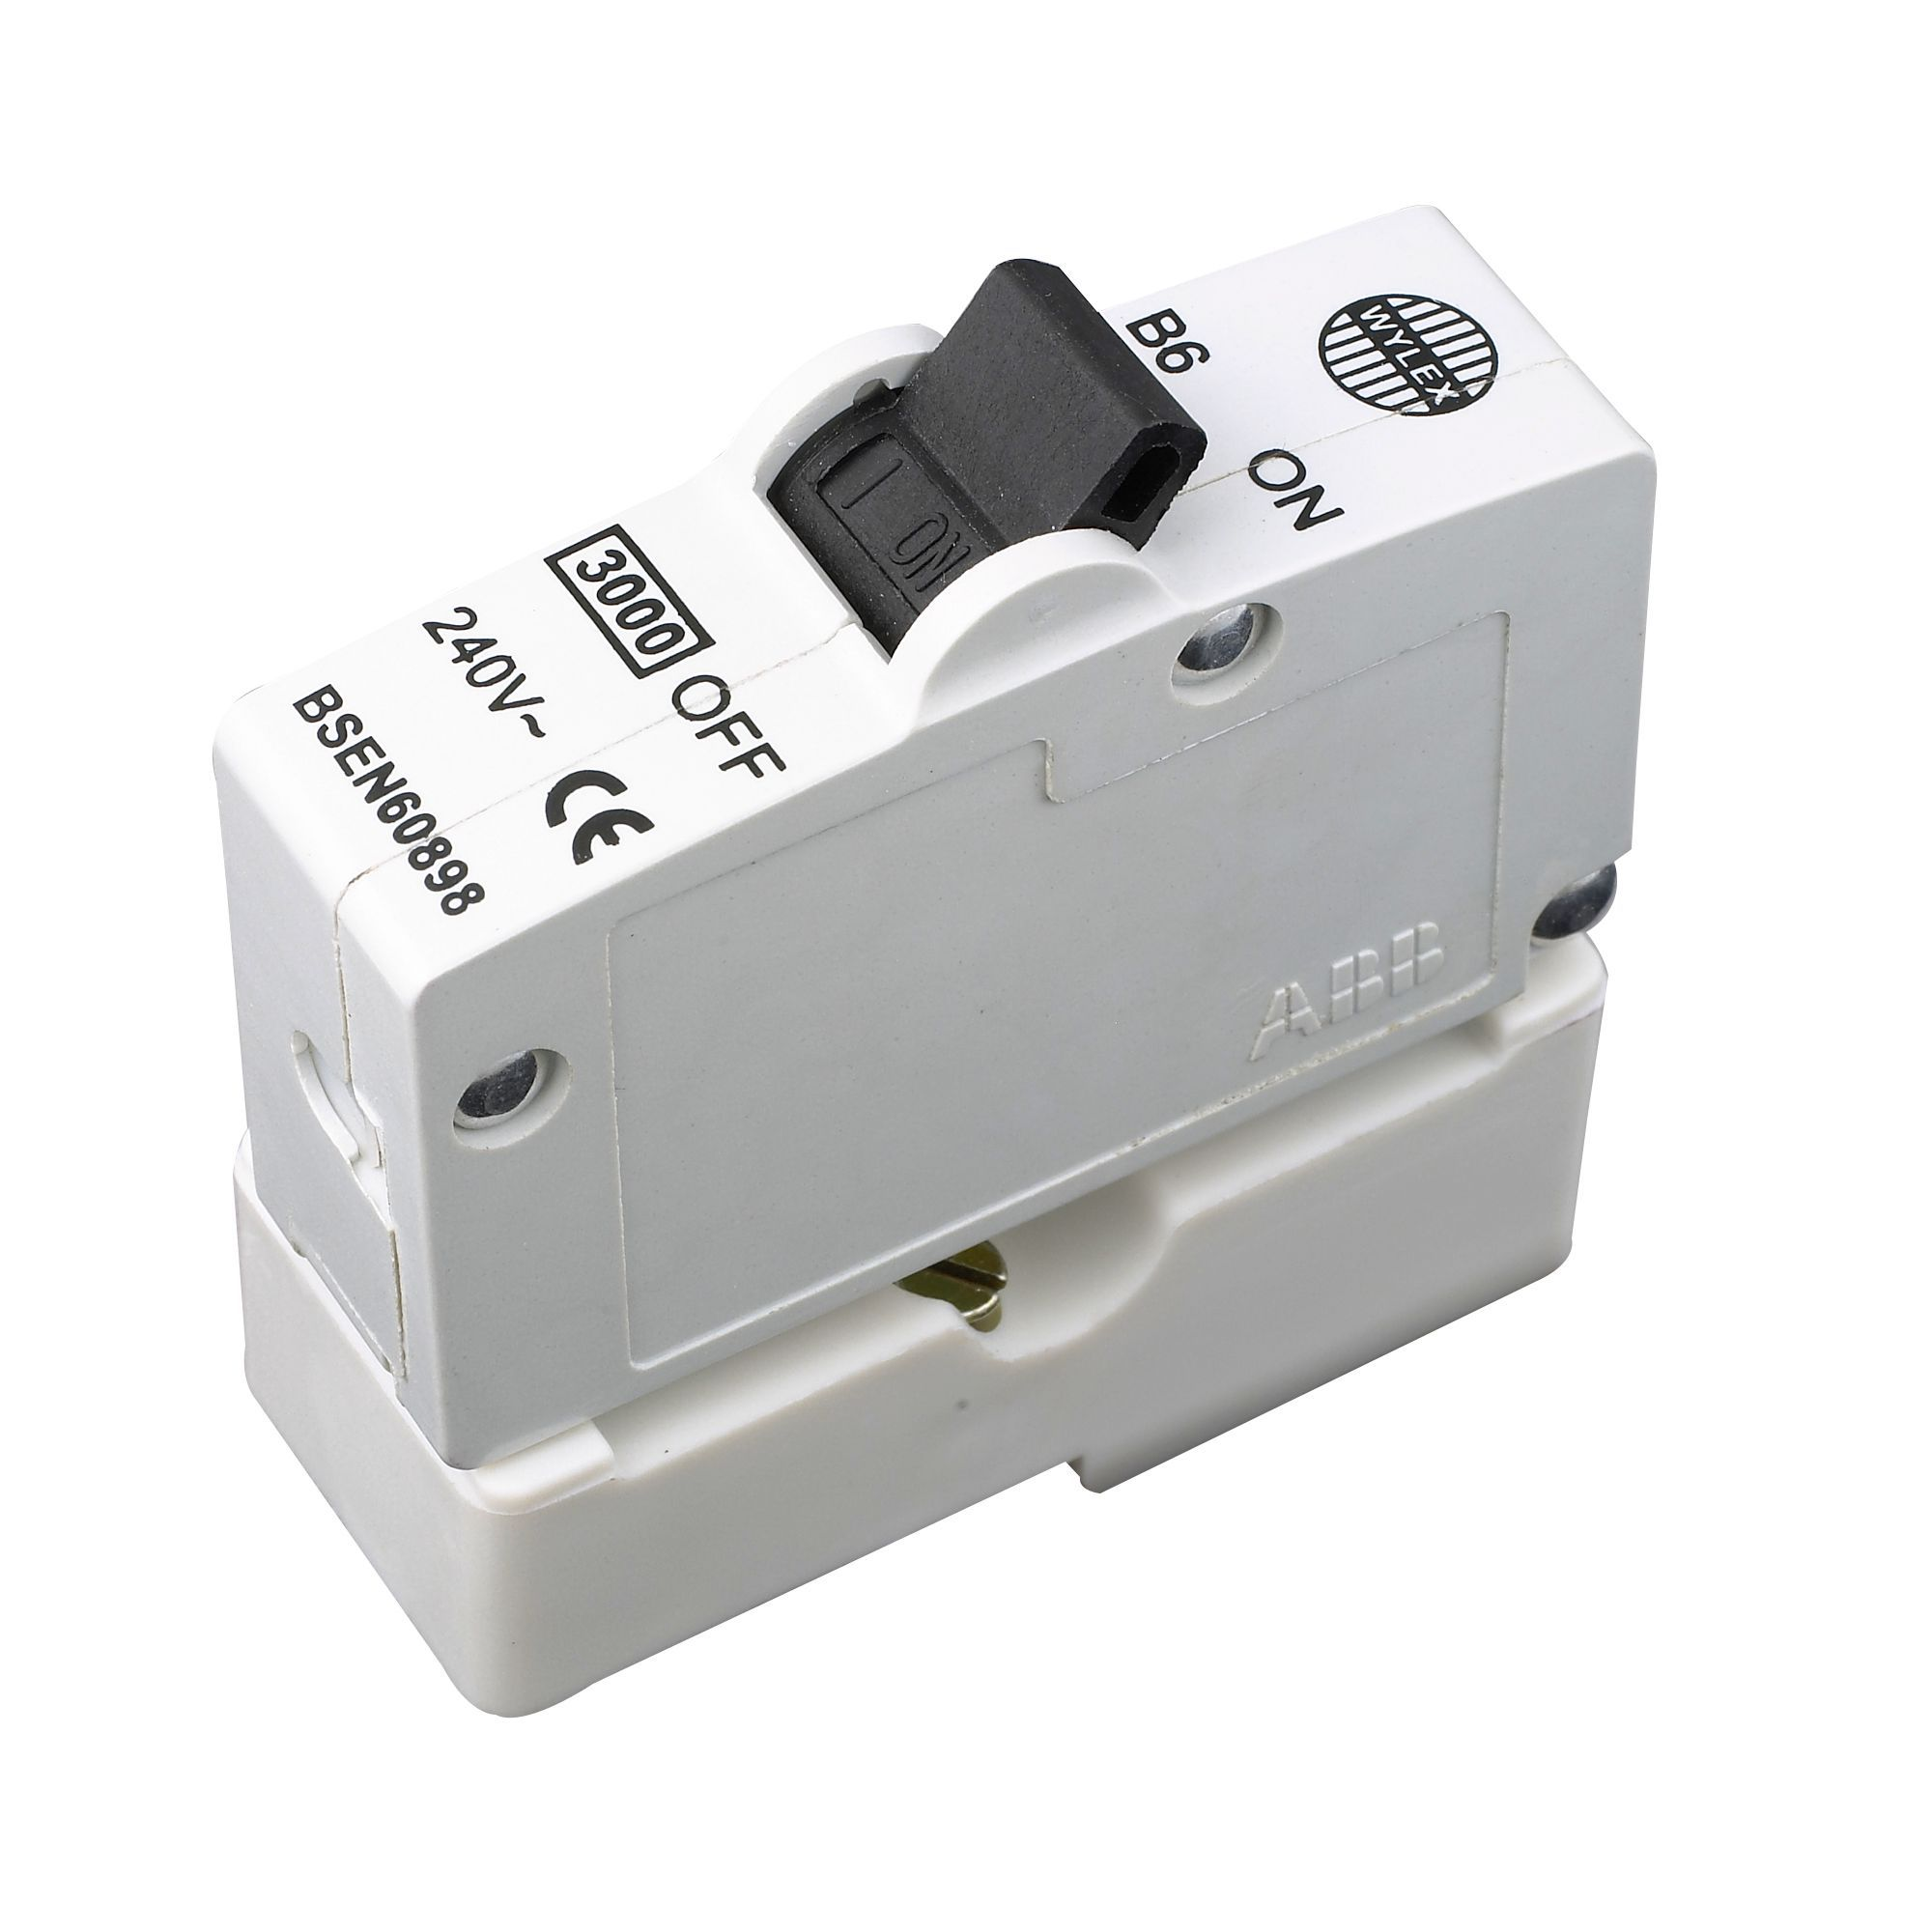 Wylex 6A Miniature circuit breaker | Departments | DIY at B&Q.